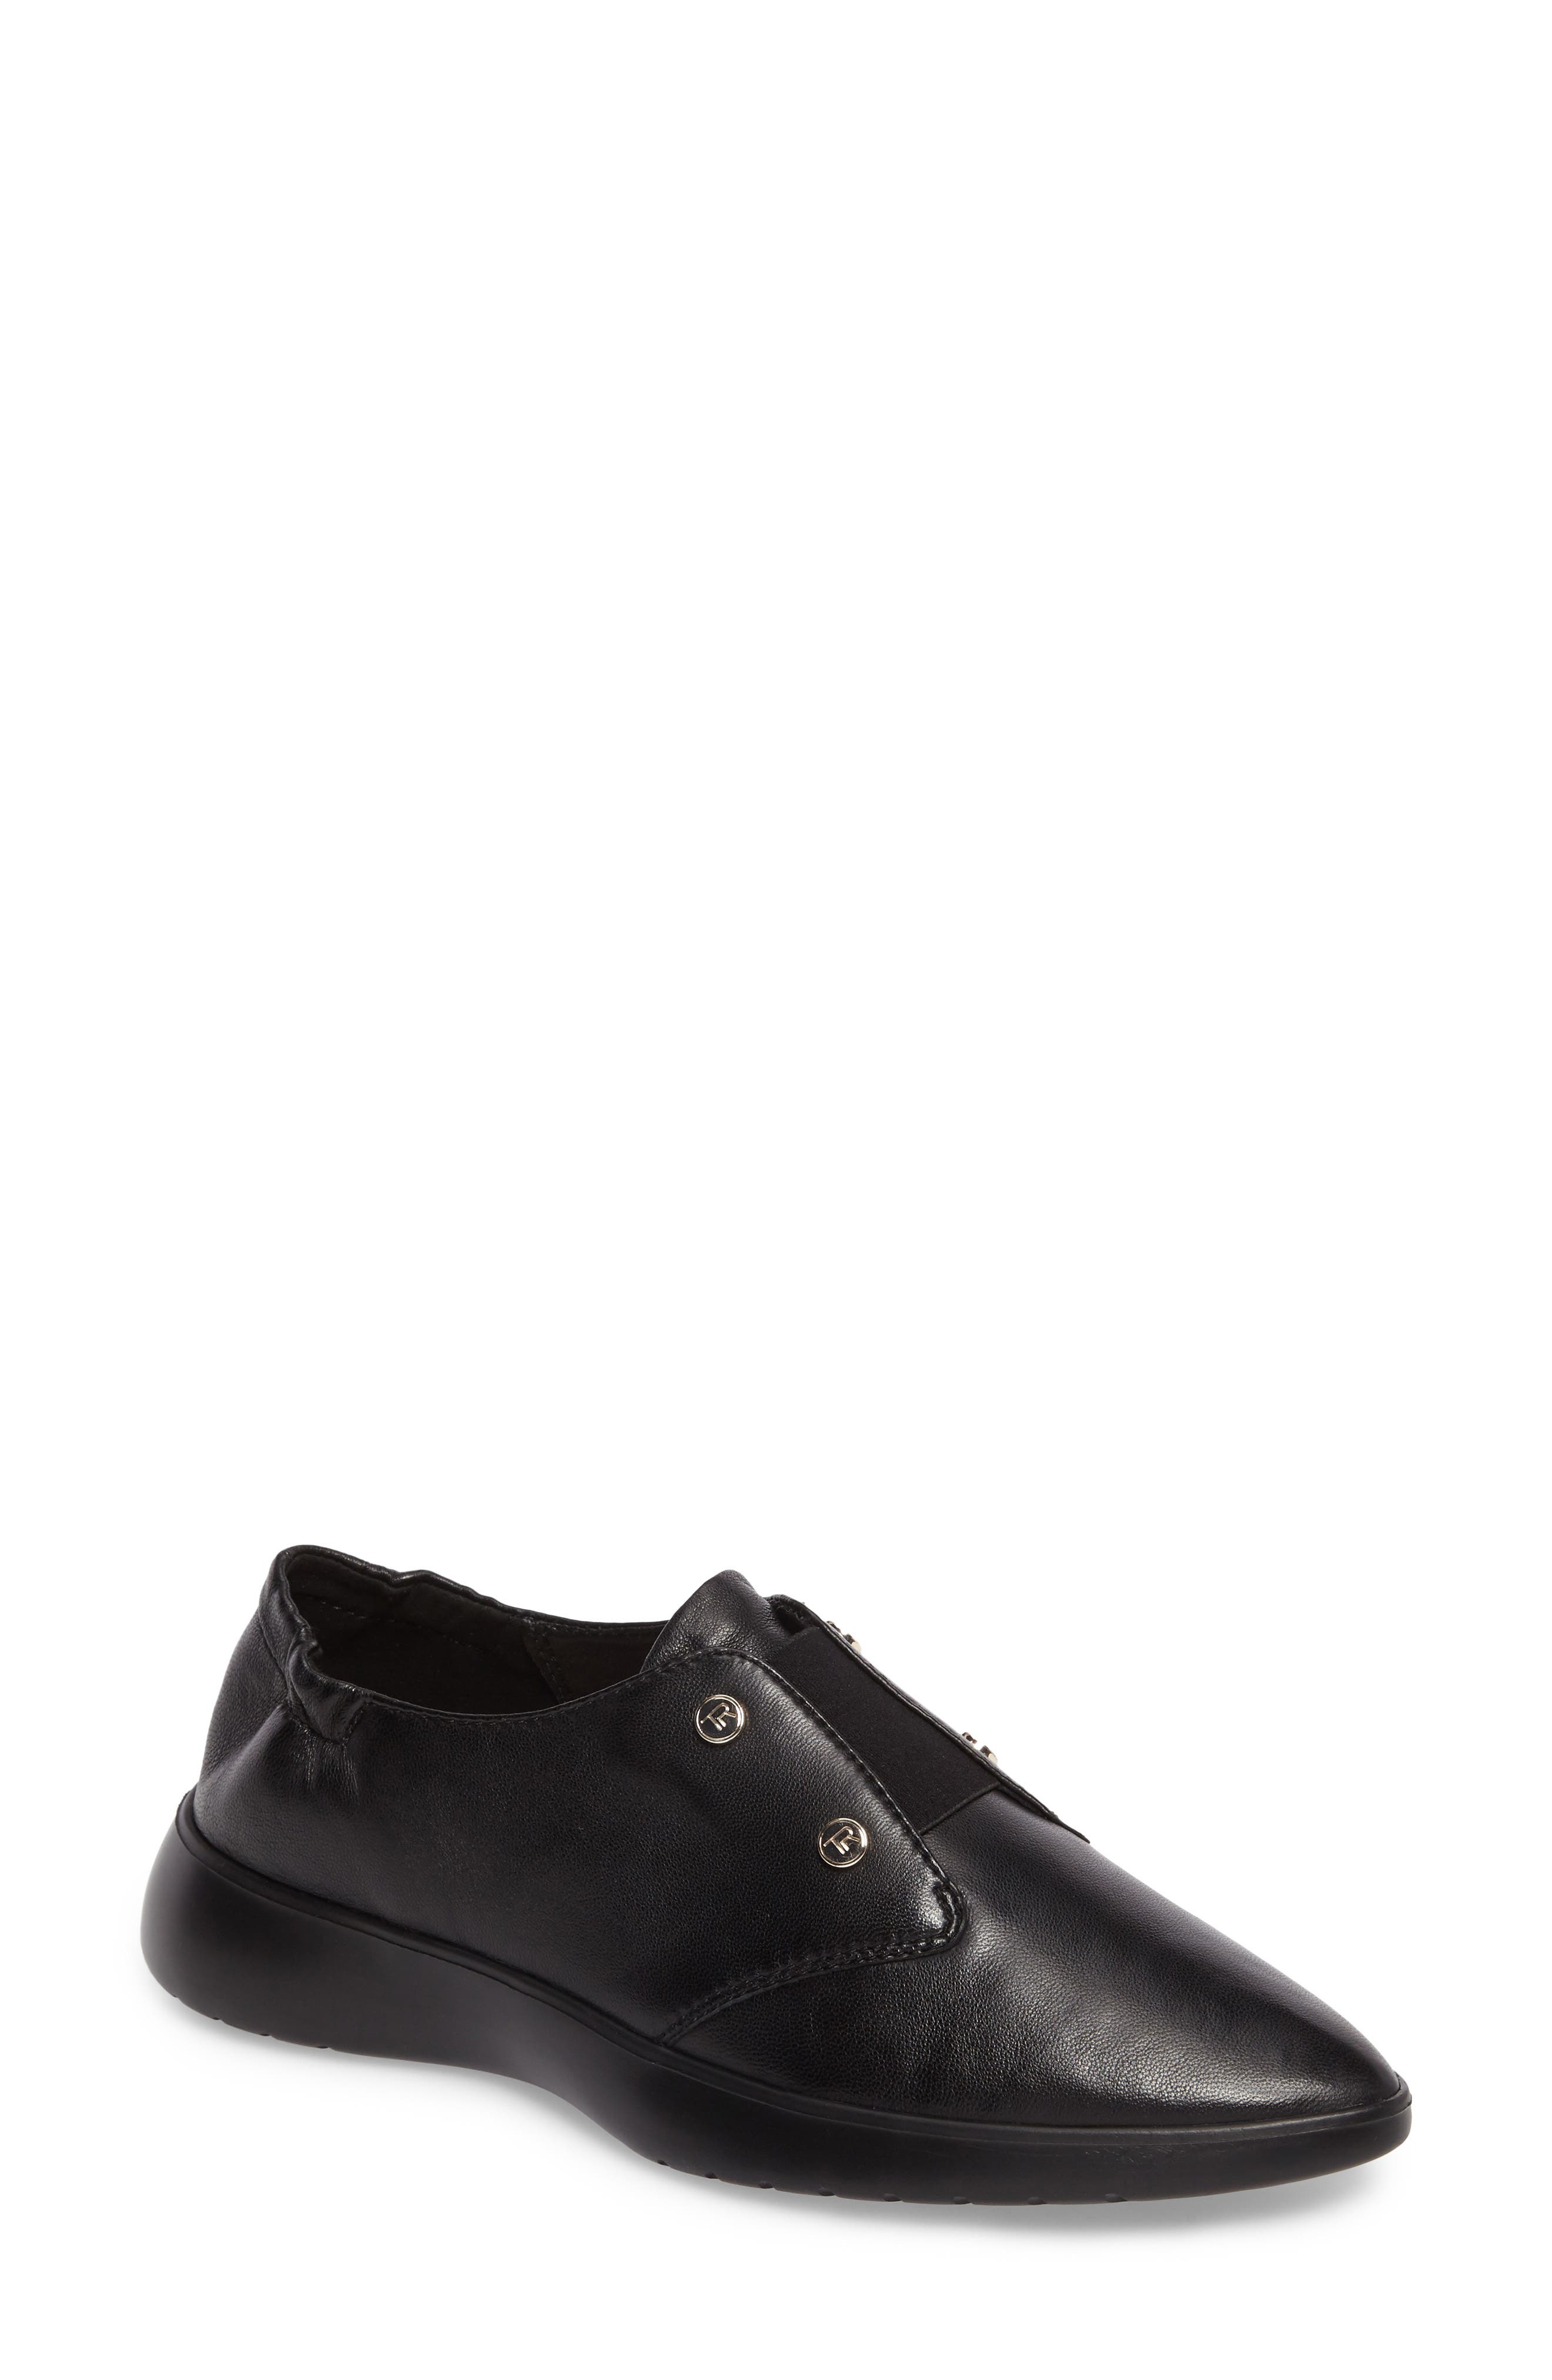 Darcy Slip-On Oxford,                         Main,                         color, Black Leather